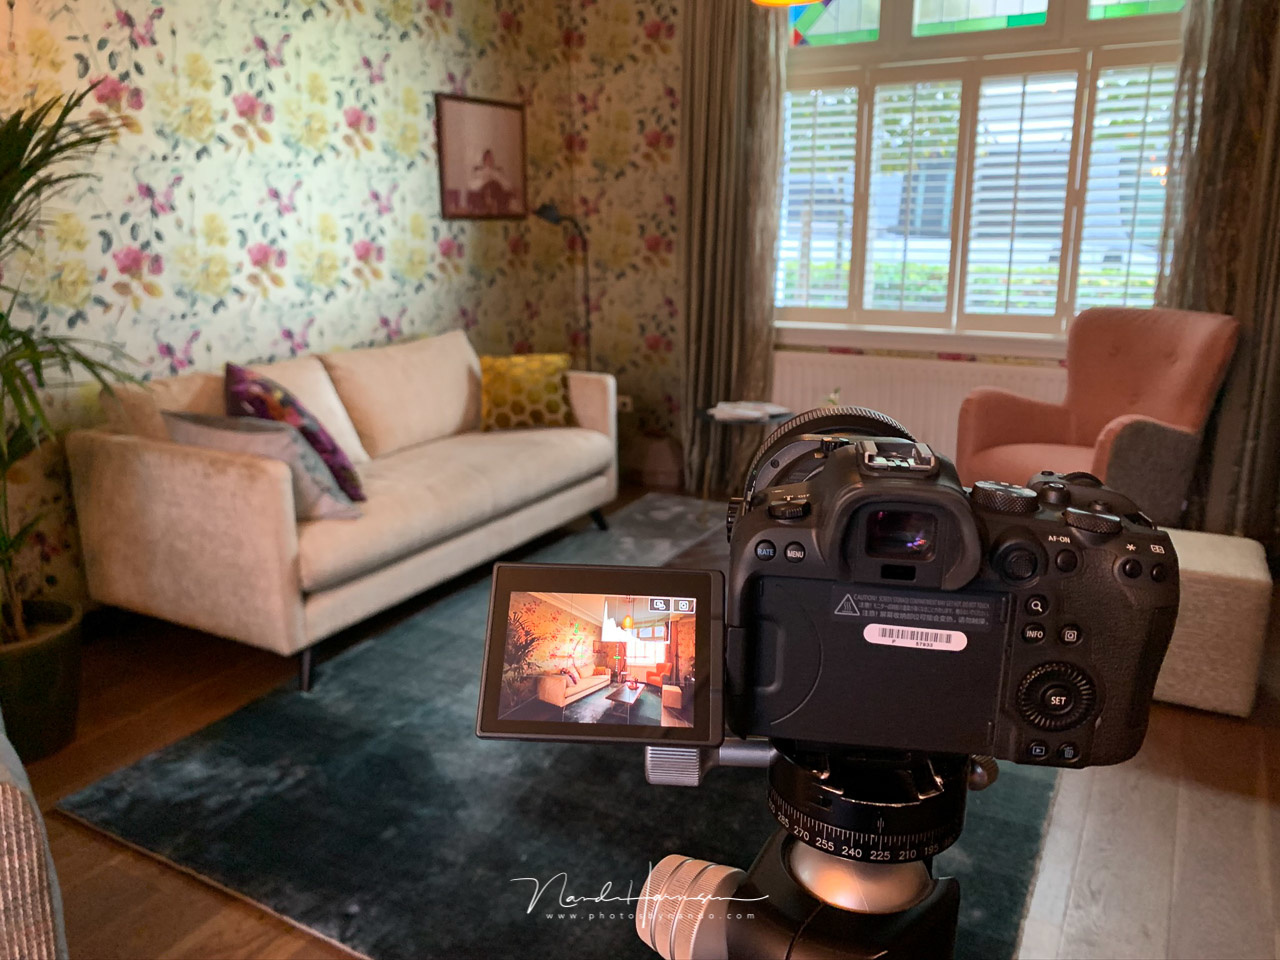 Shooting real estate. The manual focus assist works very convenient with the manual TS-E lenses